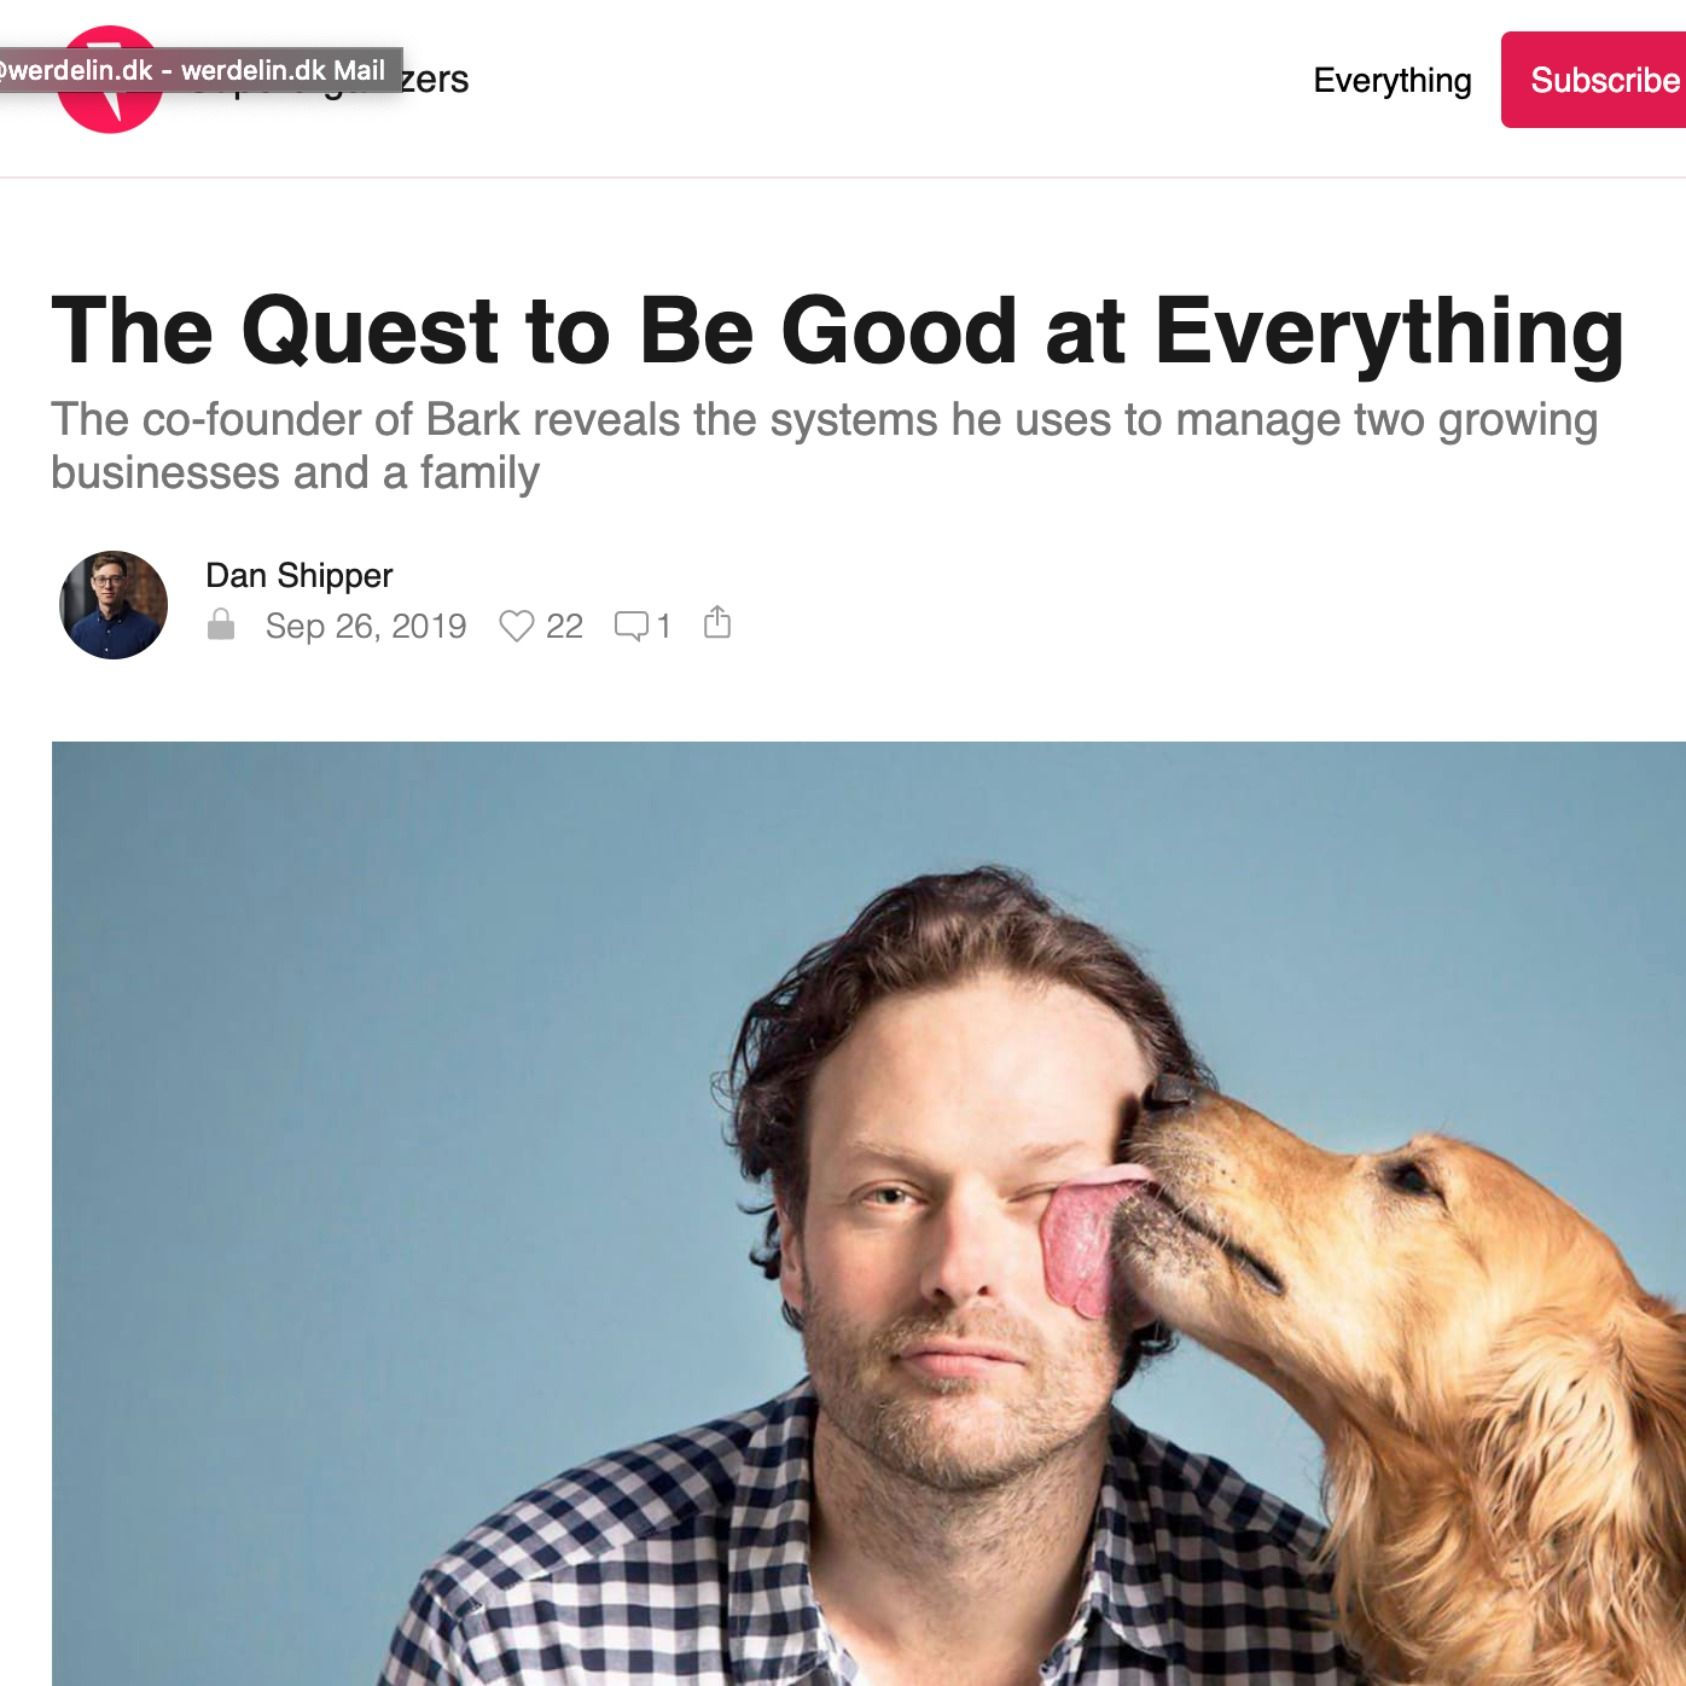 New format: Audio summeries of must read blog posts. First, how to be good at everything from Super Organizers